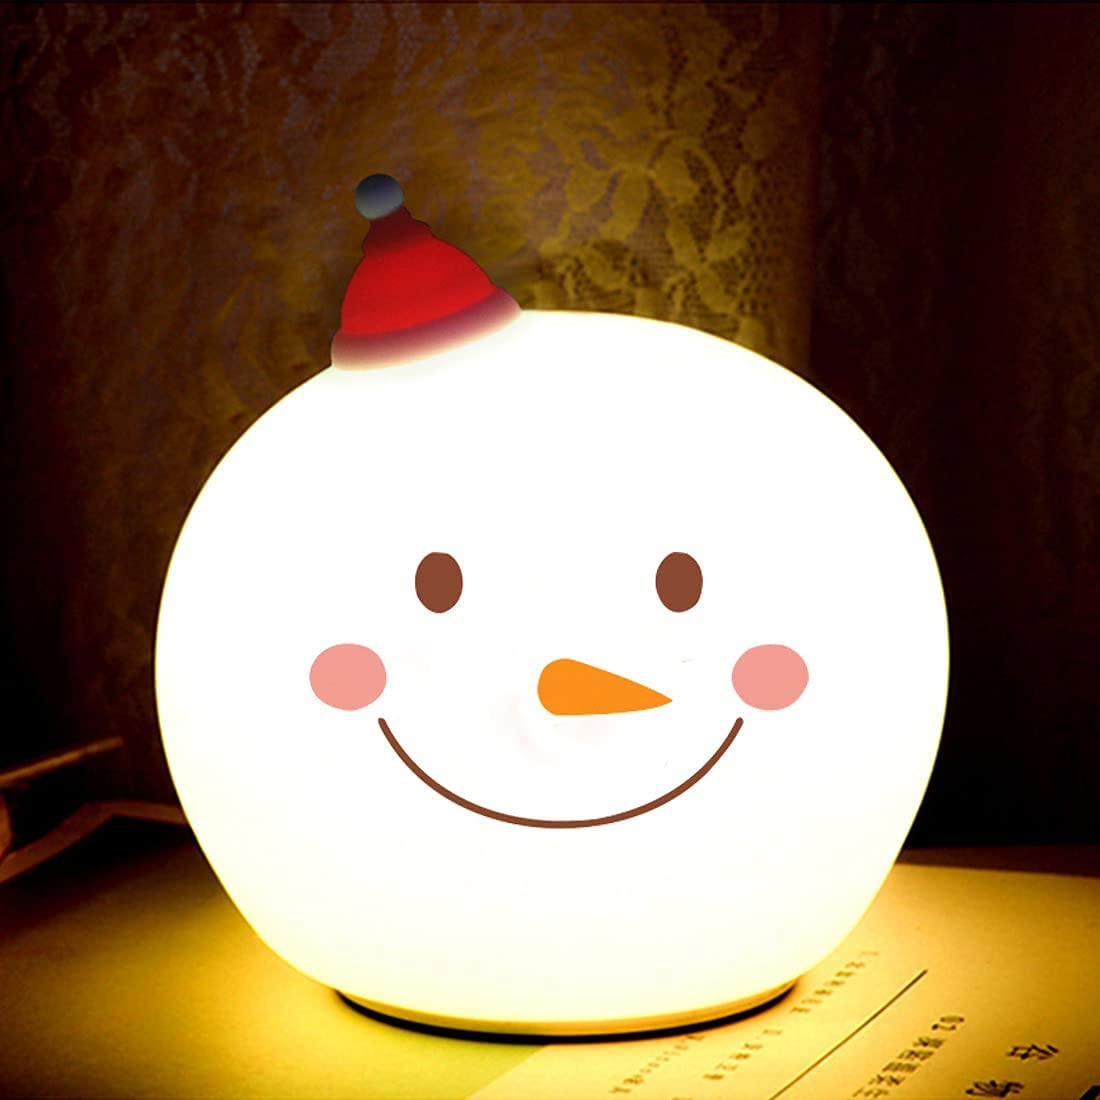 Snowman Night Light for Kids Bargain Nursery with 4 LED Max 61% OFF Mo Lights